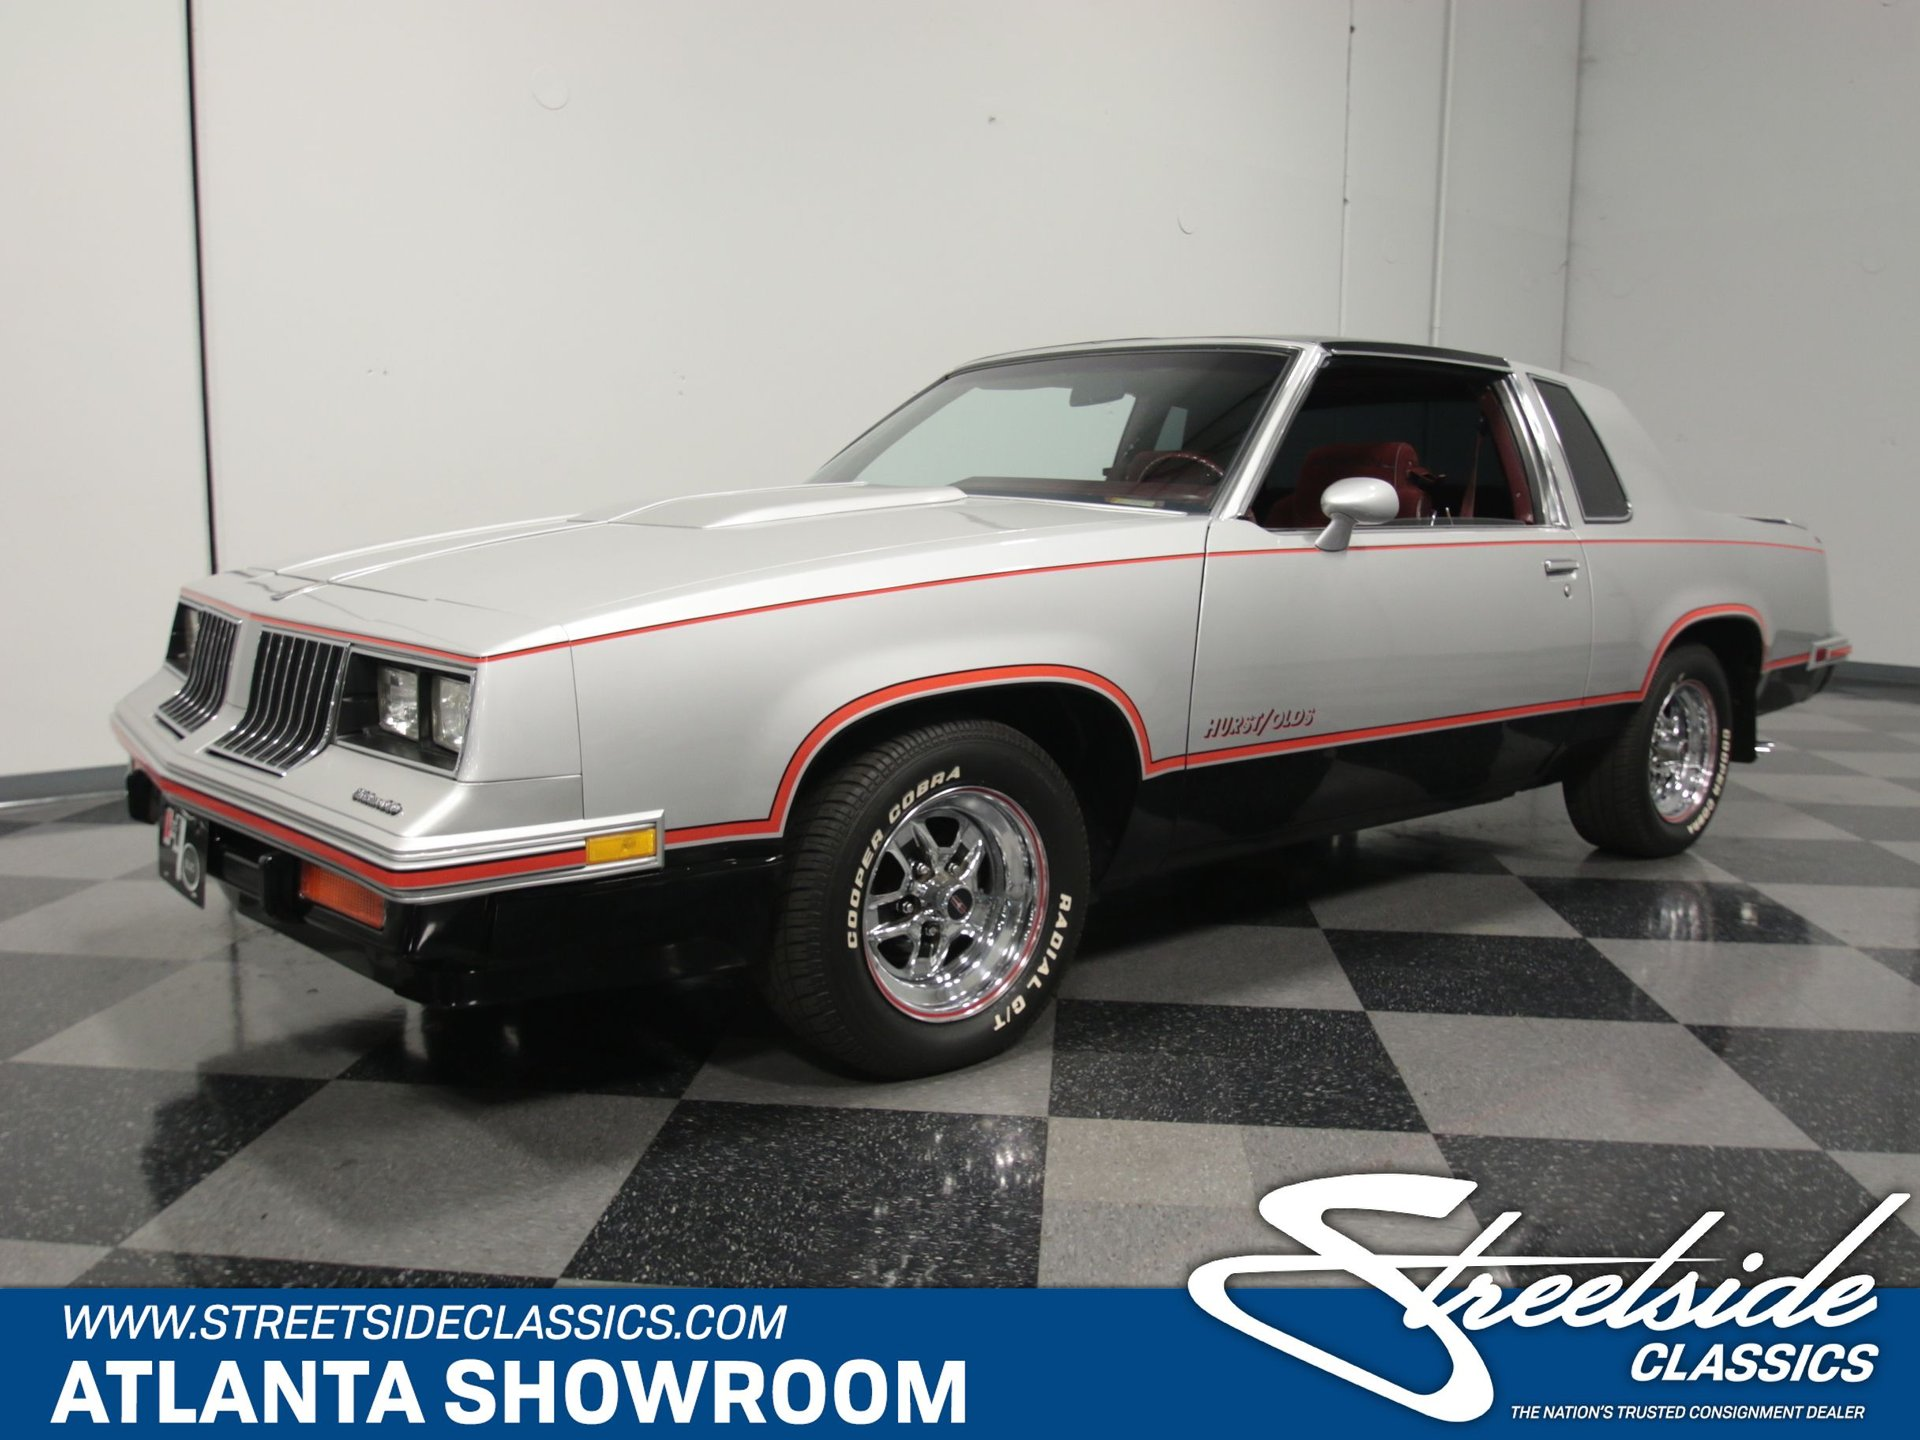 1984 oldsmobile cutlass 442 hurst olds